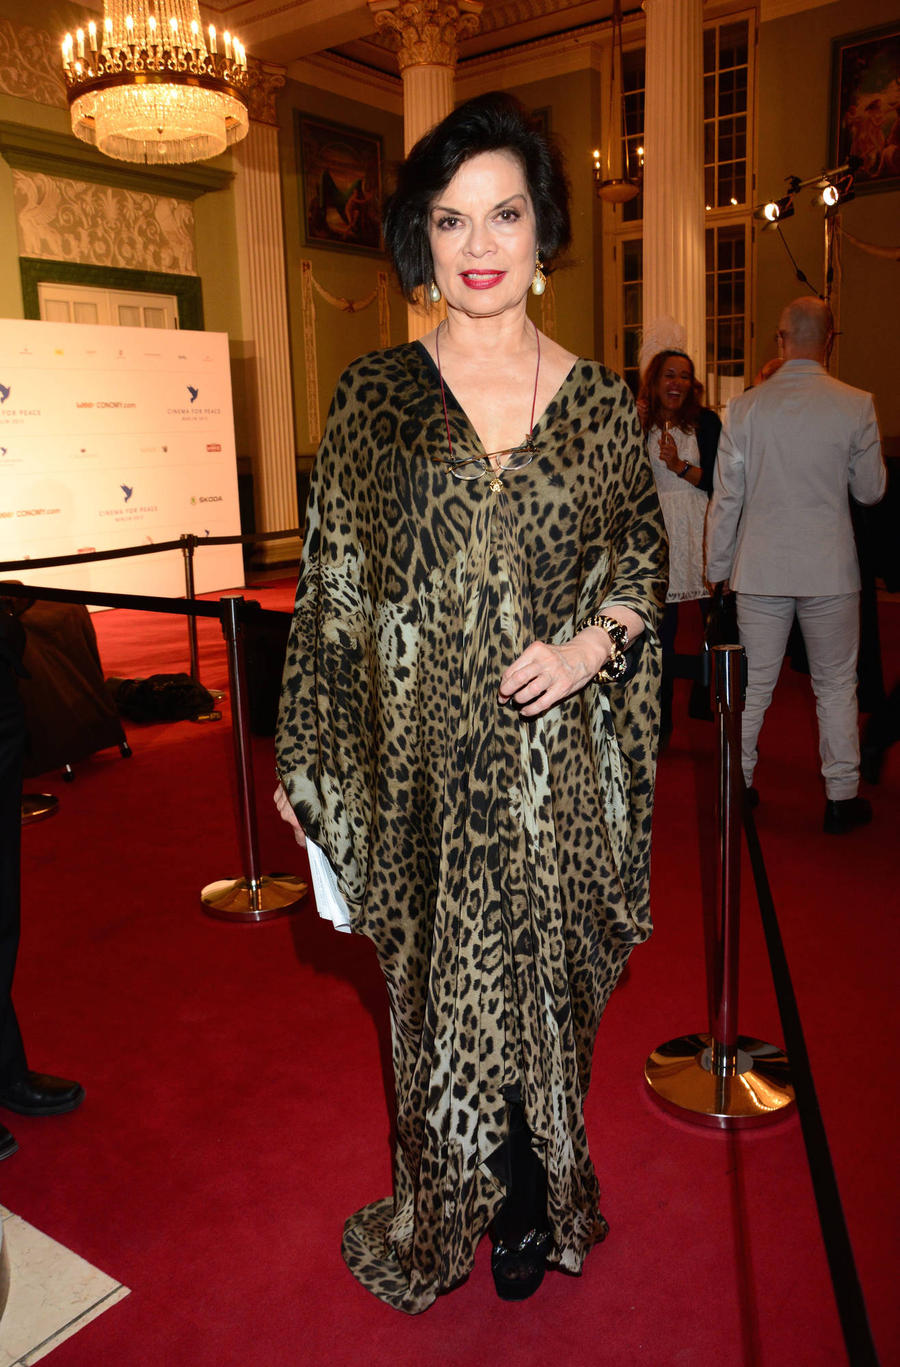 Bianca Jagger Apologises For 'Despicable' Tweet